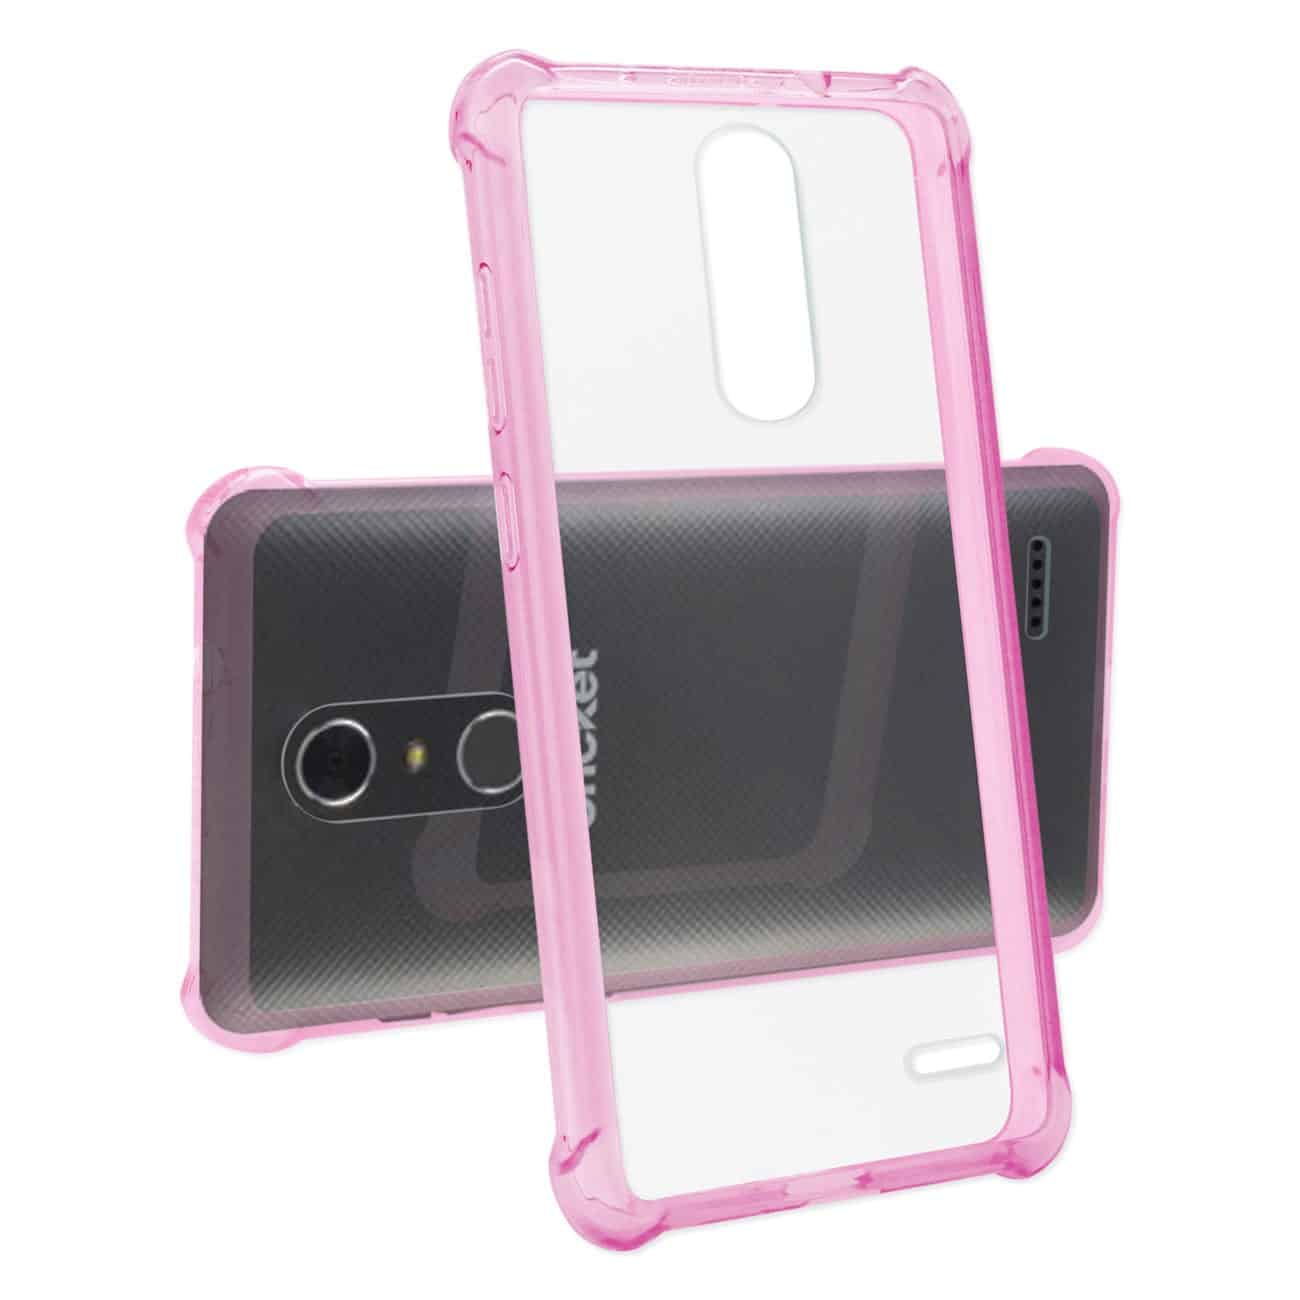 ZTE GRAND X4 CLEAR BUMPER CASE WITH AIR CUSHION PROTECTION IN CLEAR HOT PINK